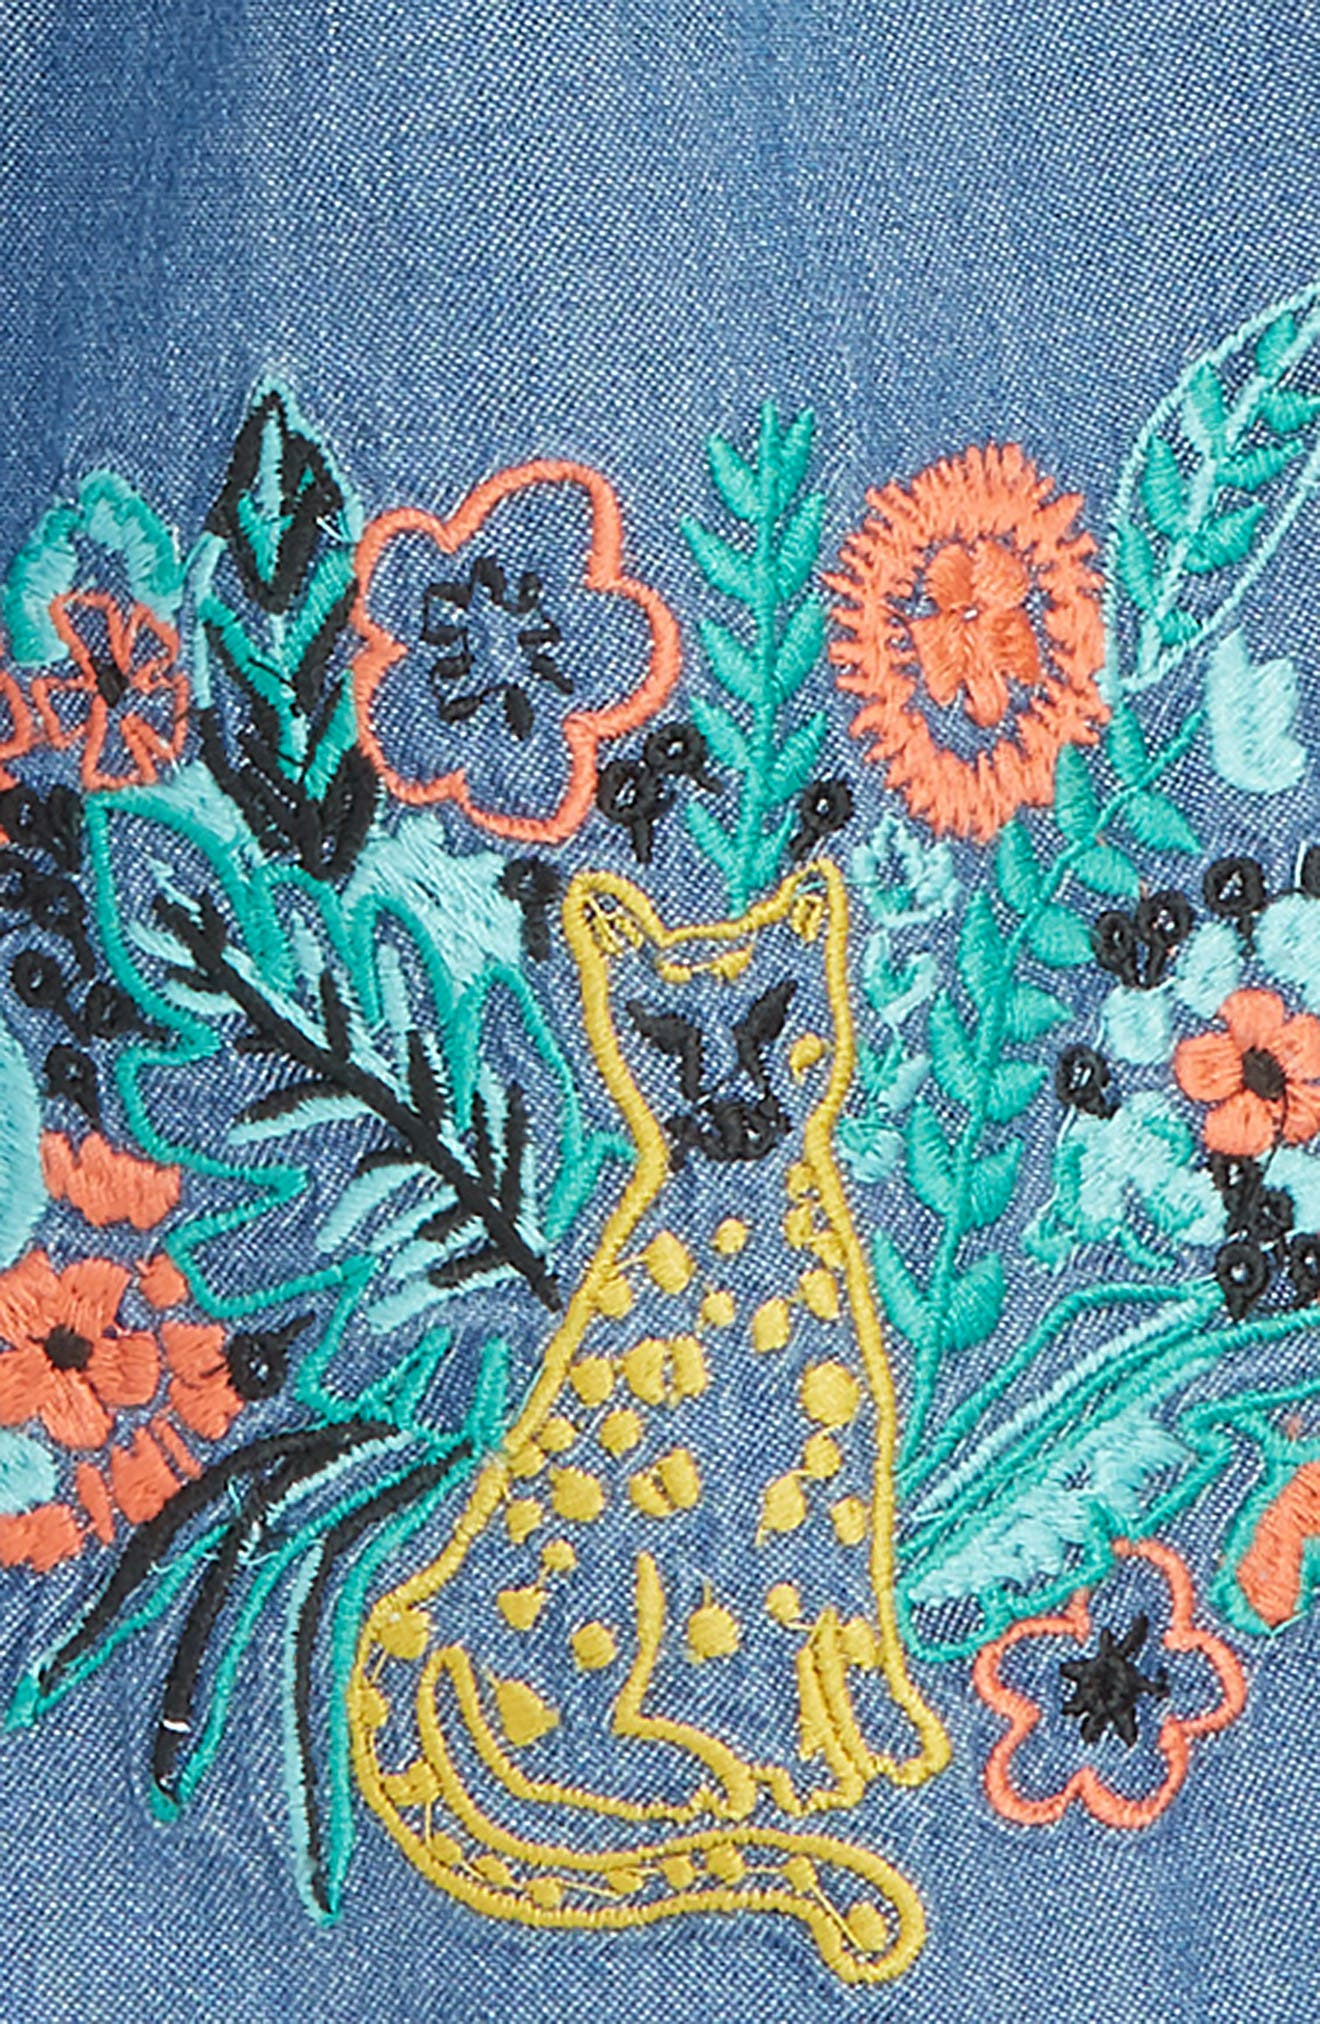 Embroidered Chambray Dress,                             Alternate thumbnail 2, color,                             Blue Wash Jungle Cat